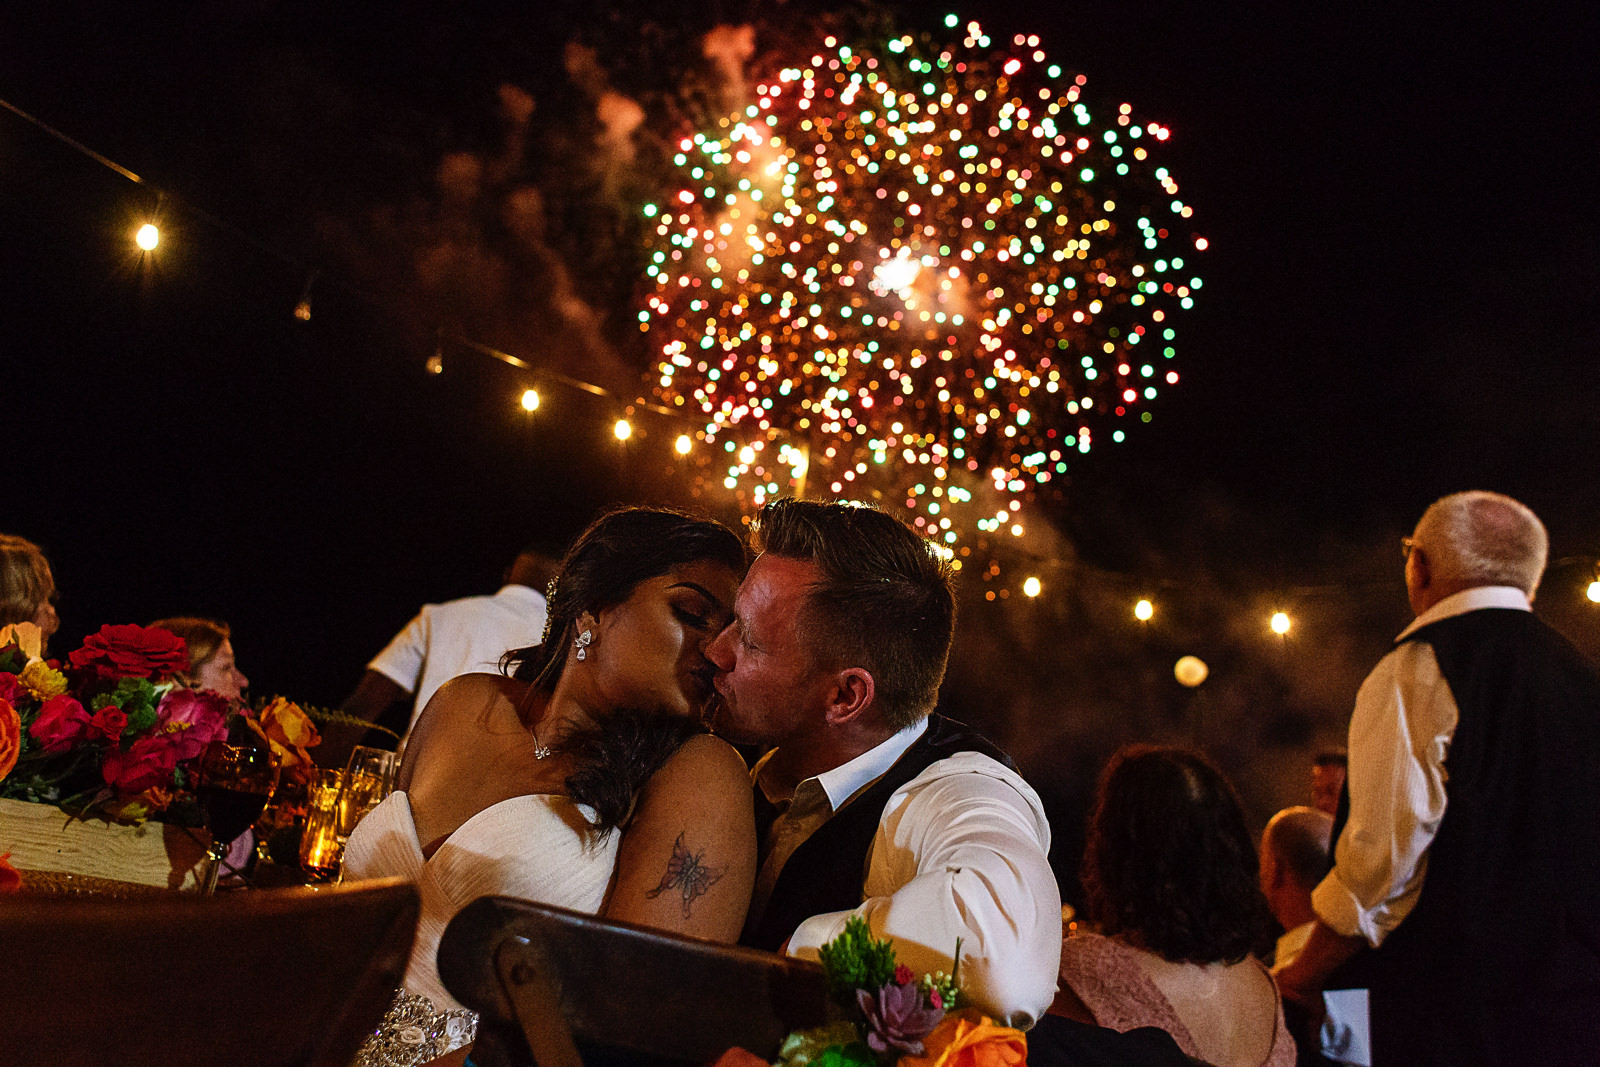 Bride and groom kiss sitting at the table while fireworks light the sky